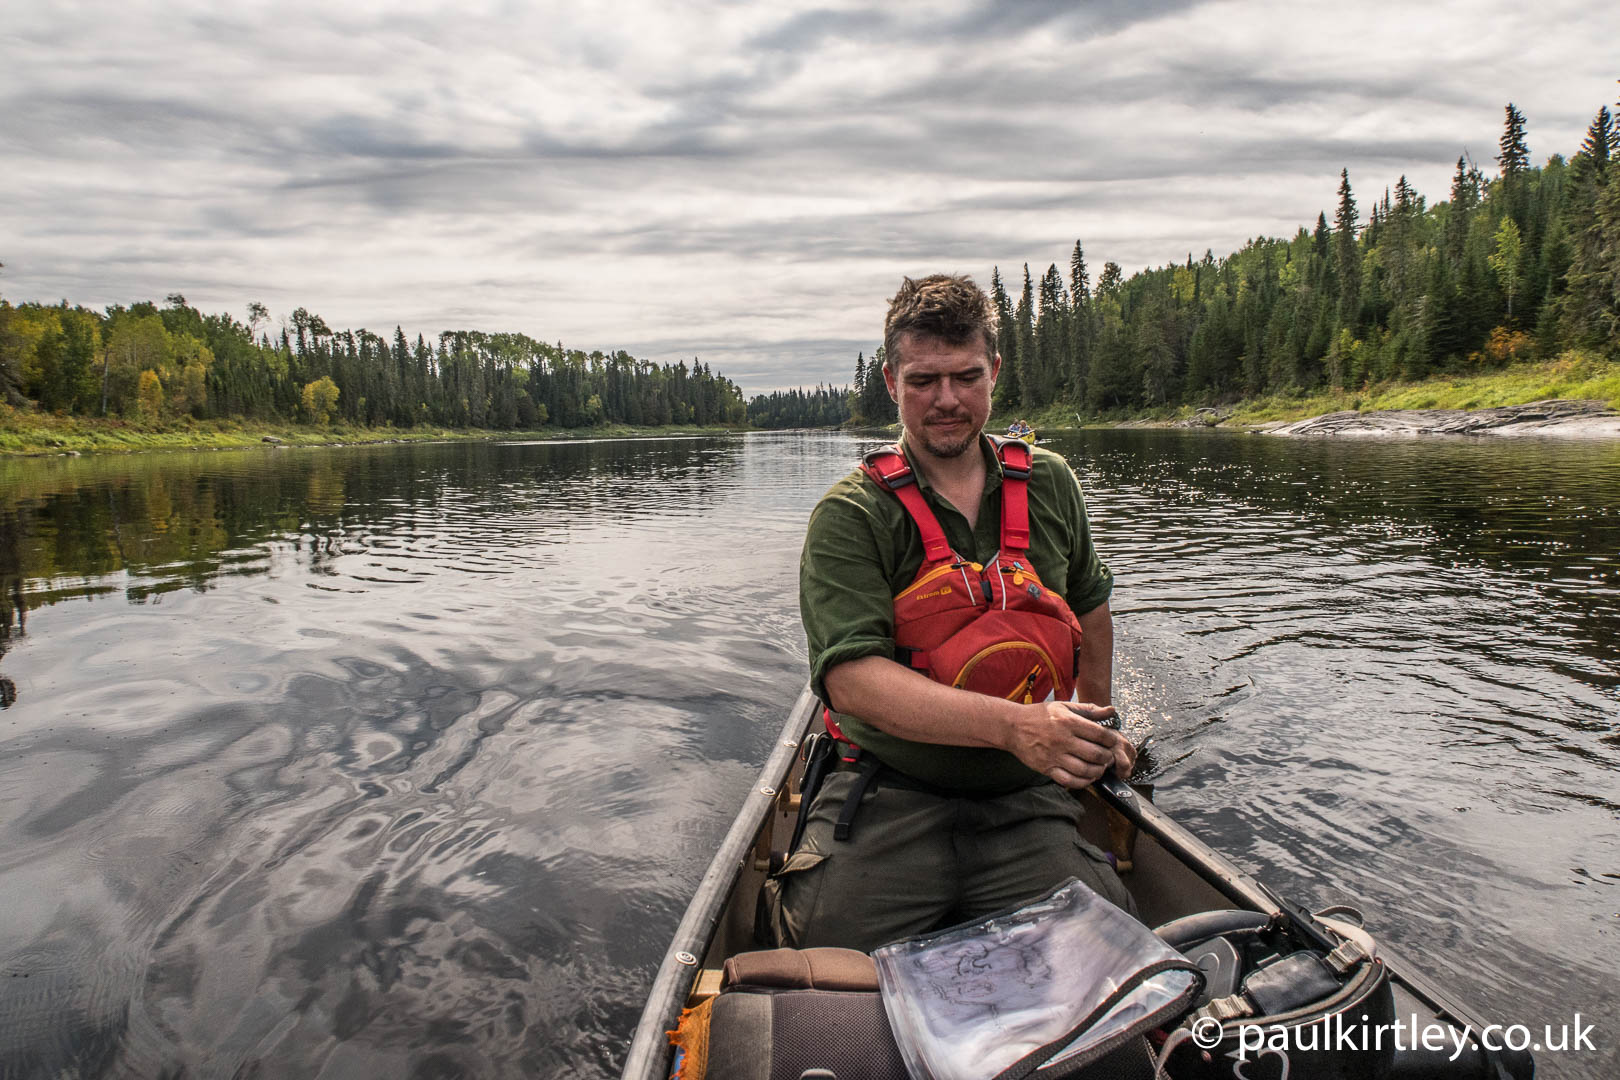 Paul Kirtley canoeing on Missinaibi in Canada